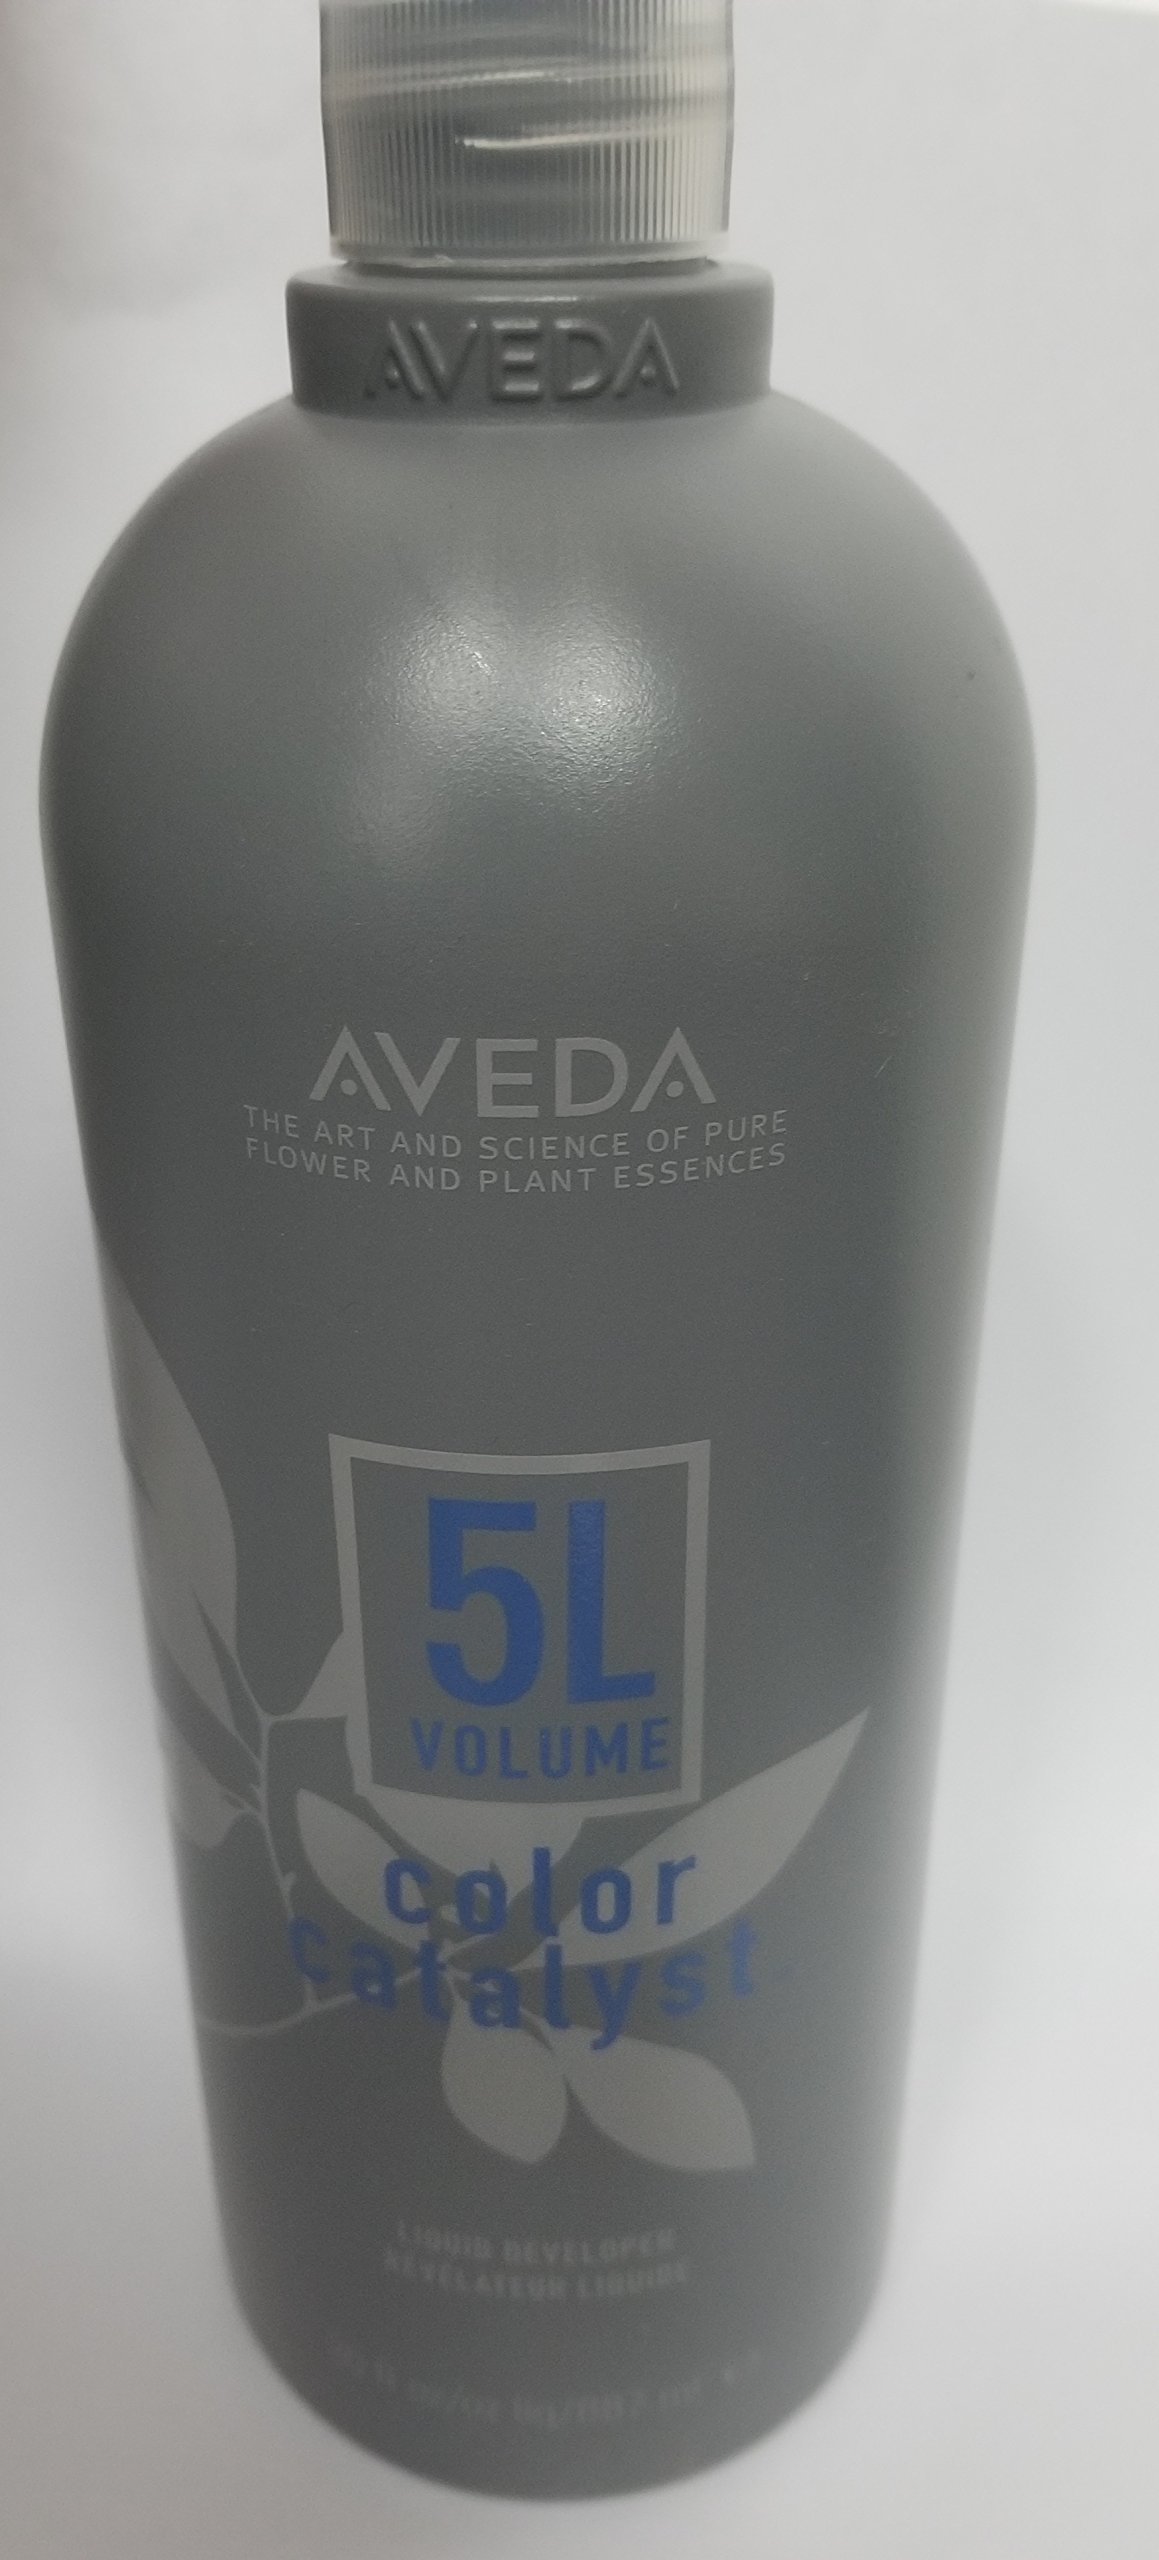 Aveda 5 Volume Color Catalyst Liquid Developer 30 Fl Oz